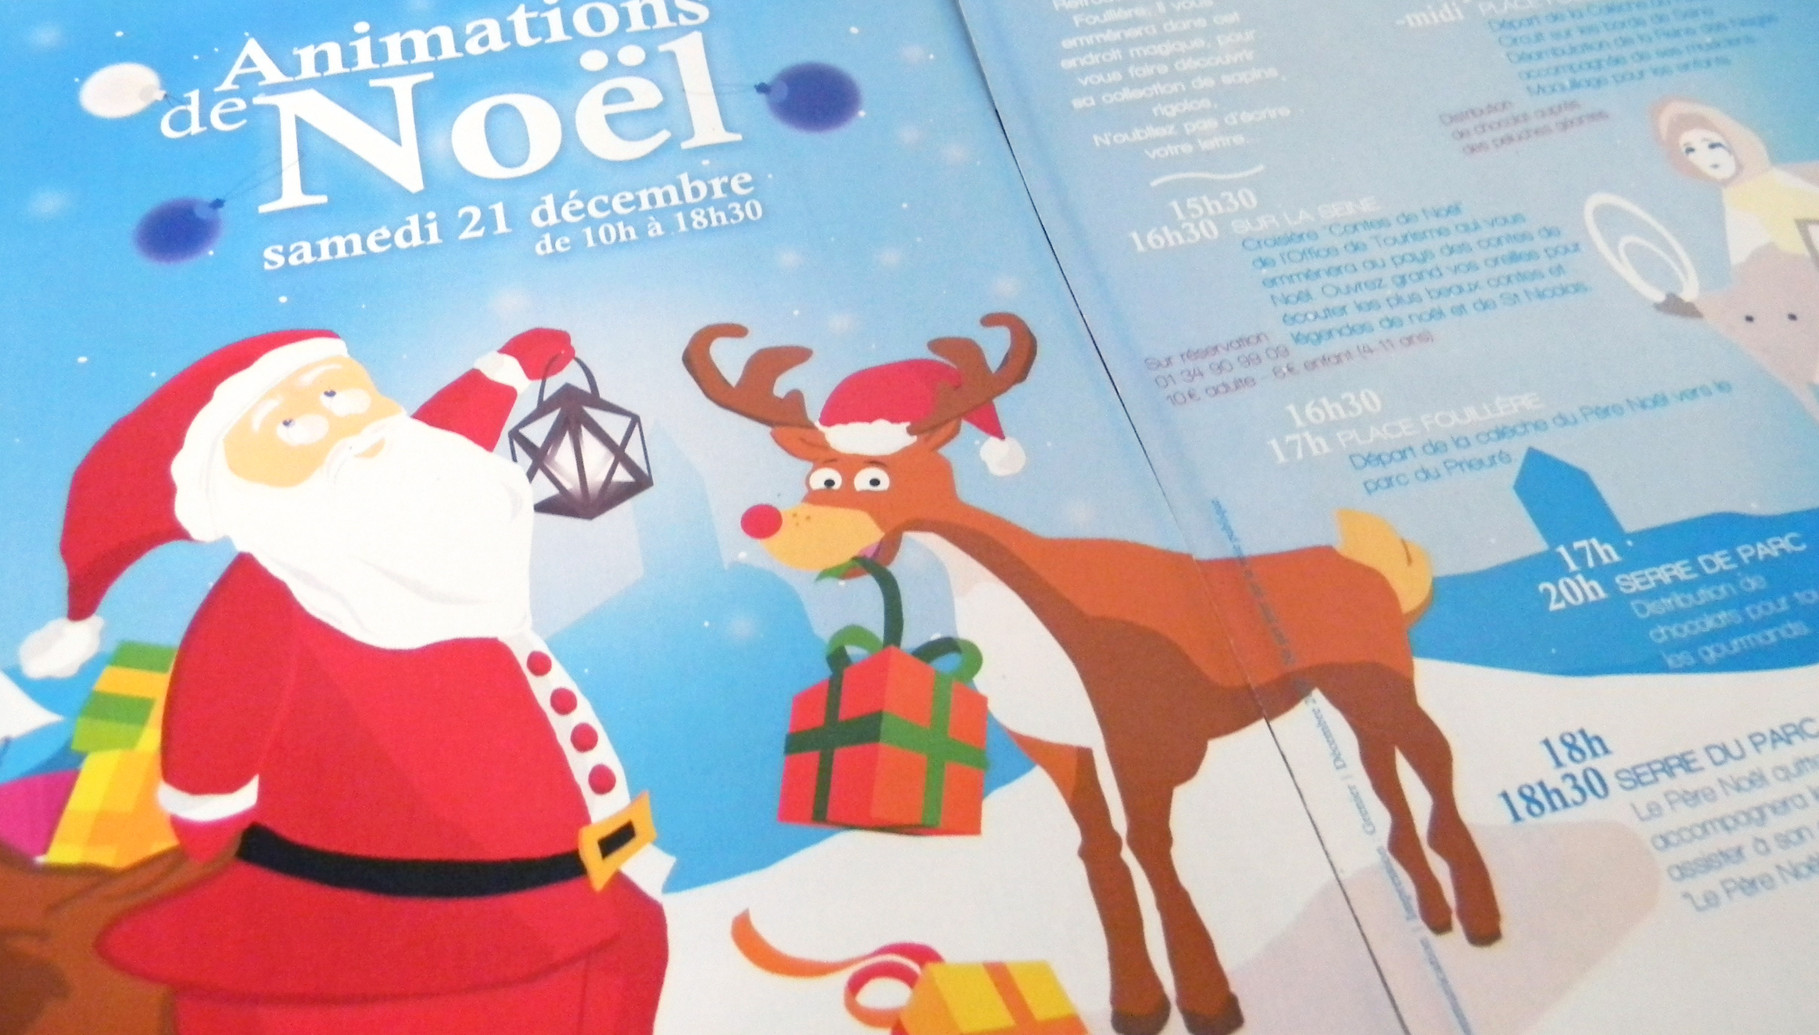 Flyer Animations de noël